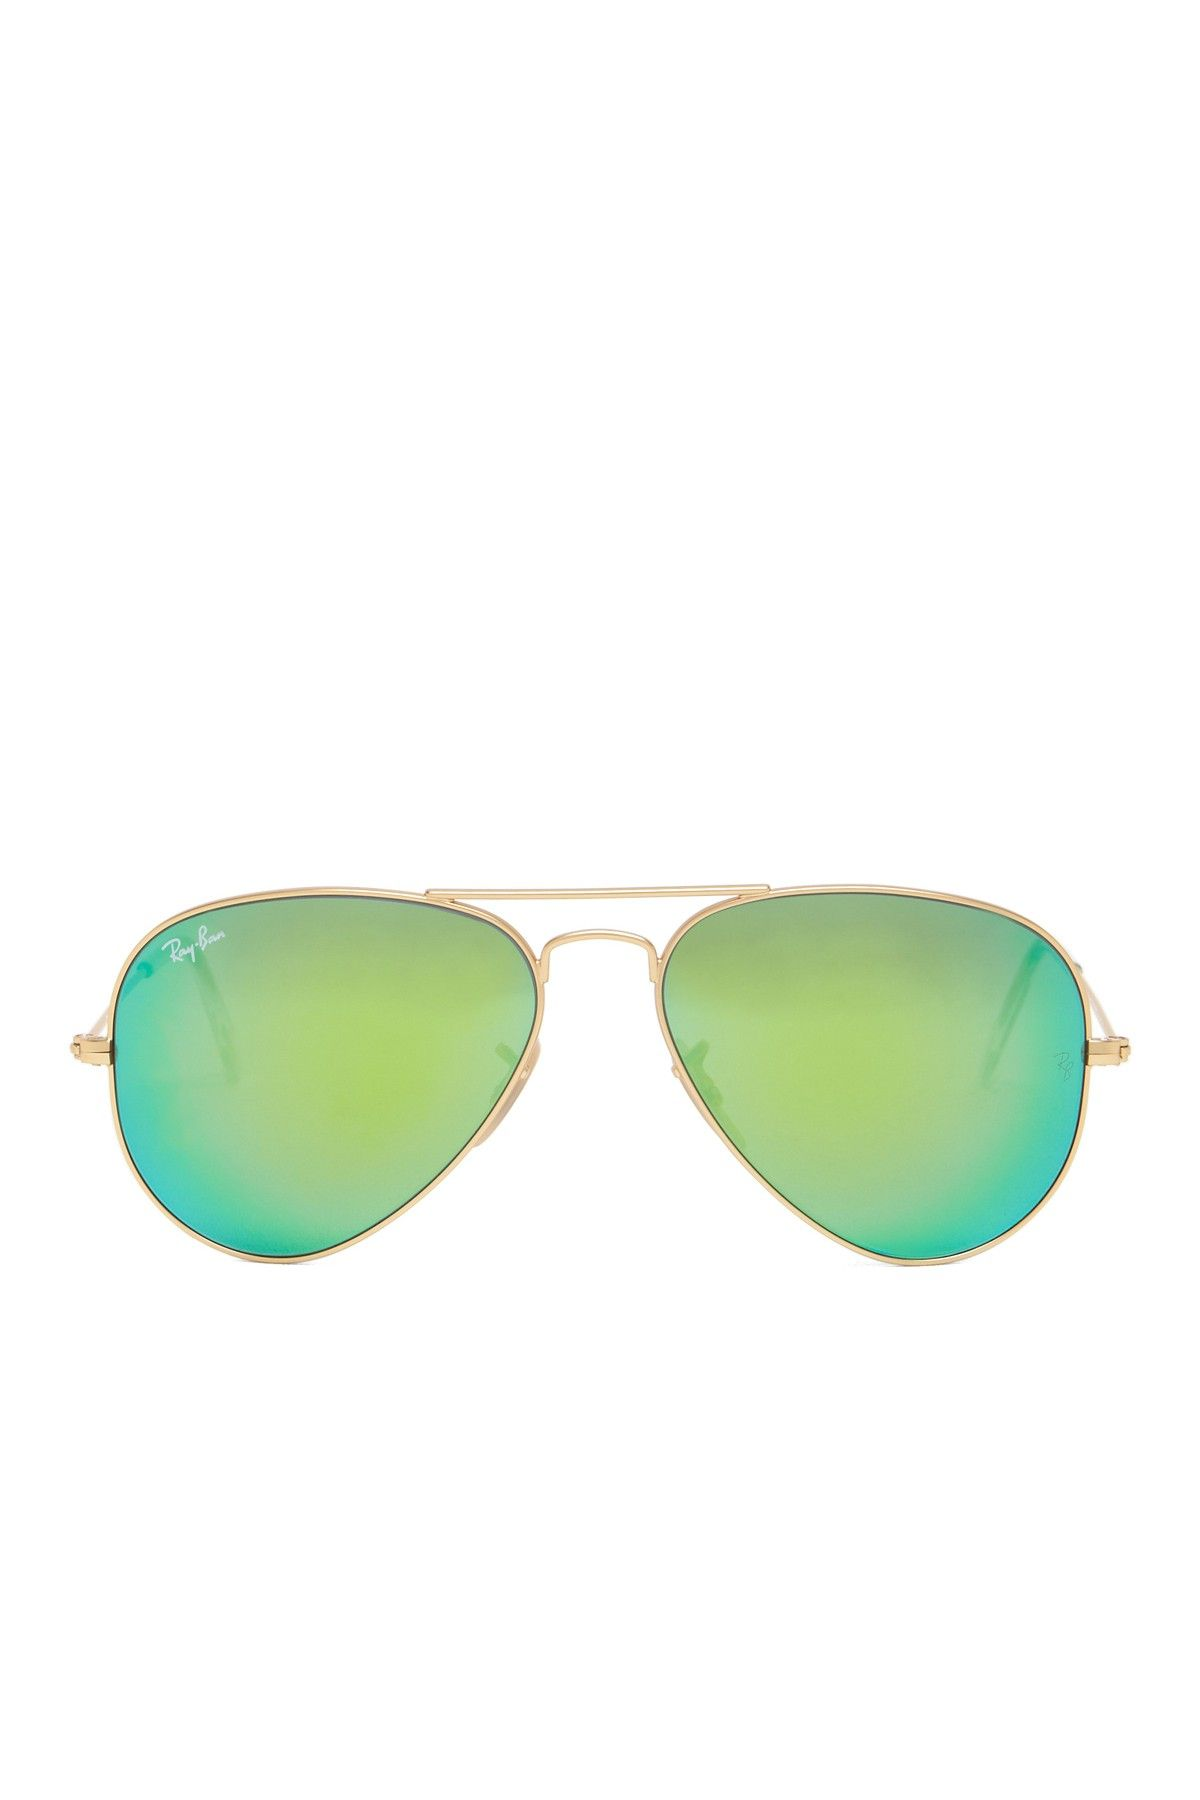 6fcbb6274 Ray-Ban aviators #green | Must haves | Ray ban sunglasses, Mirrored ...